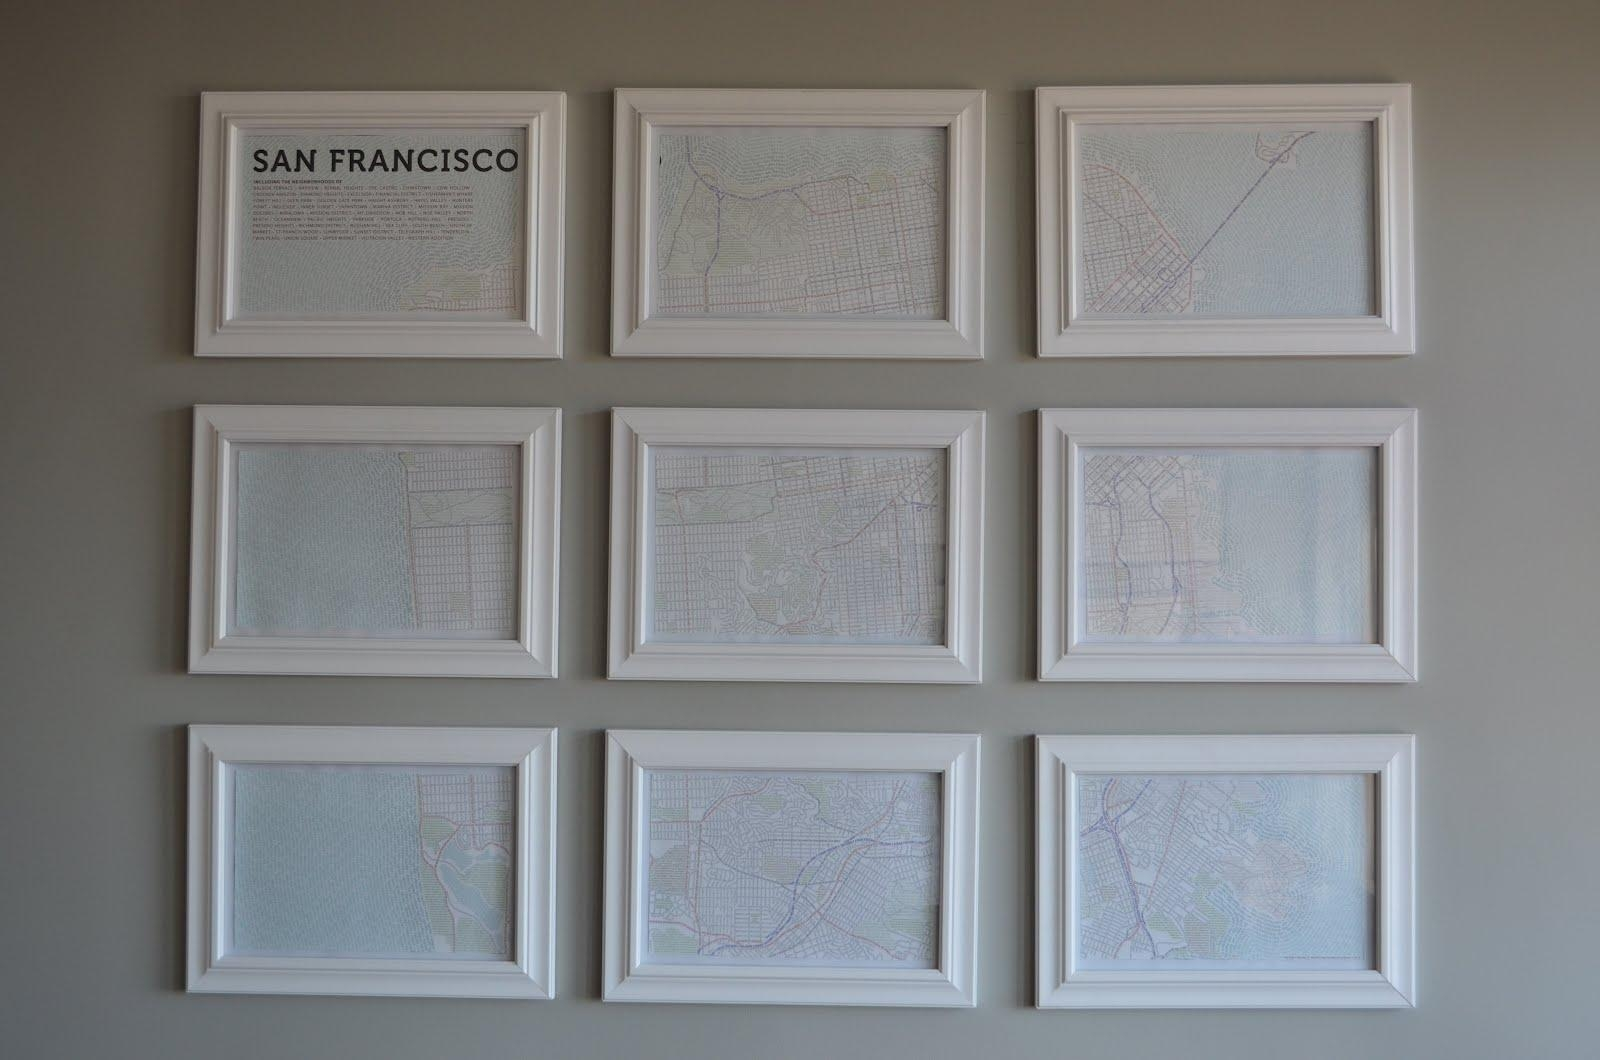 Map Wall Art Diy | They So Loved Events | Wine Country & San Regarding Maps For Wall Art (View 4 of 20)